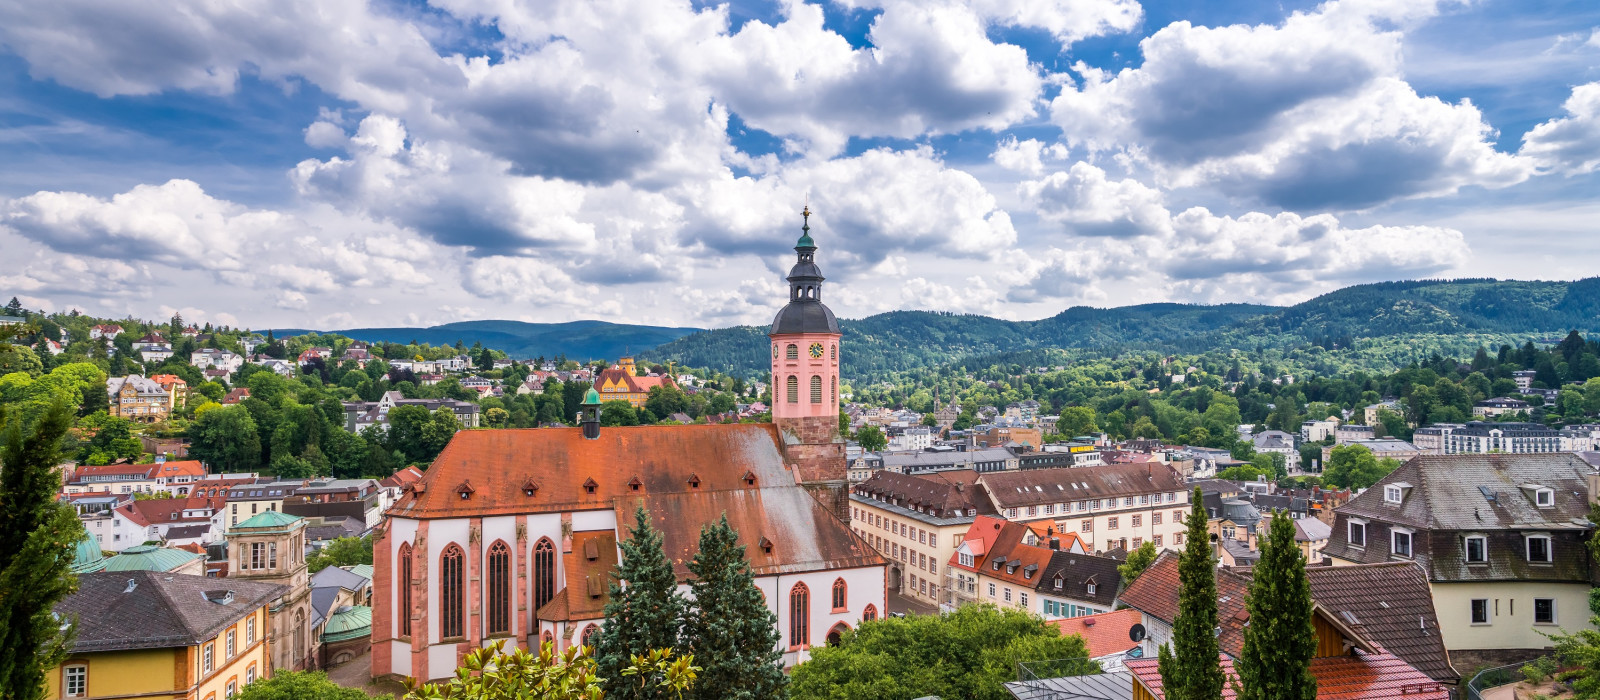 Destination Baden-Baden Germany